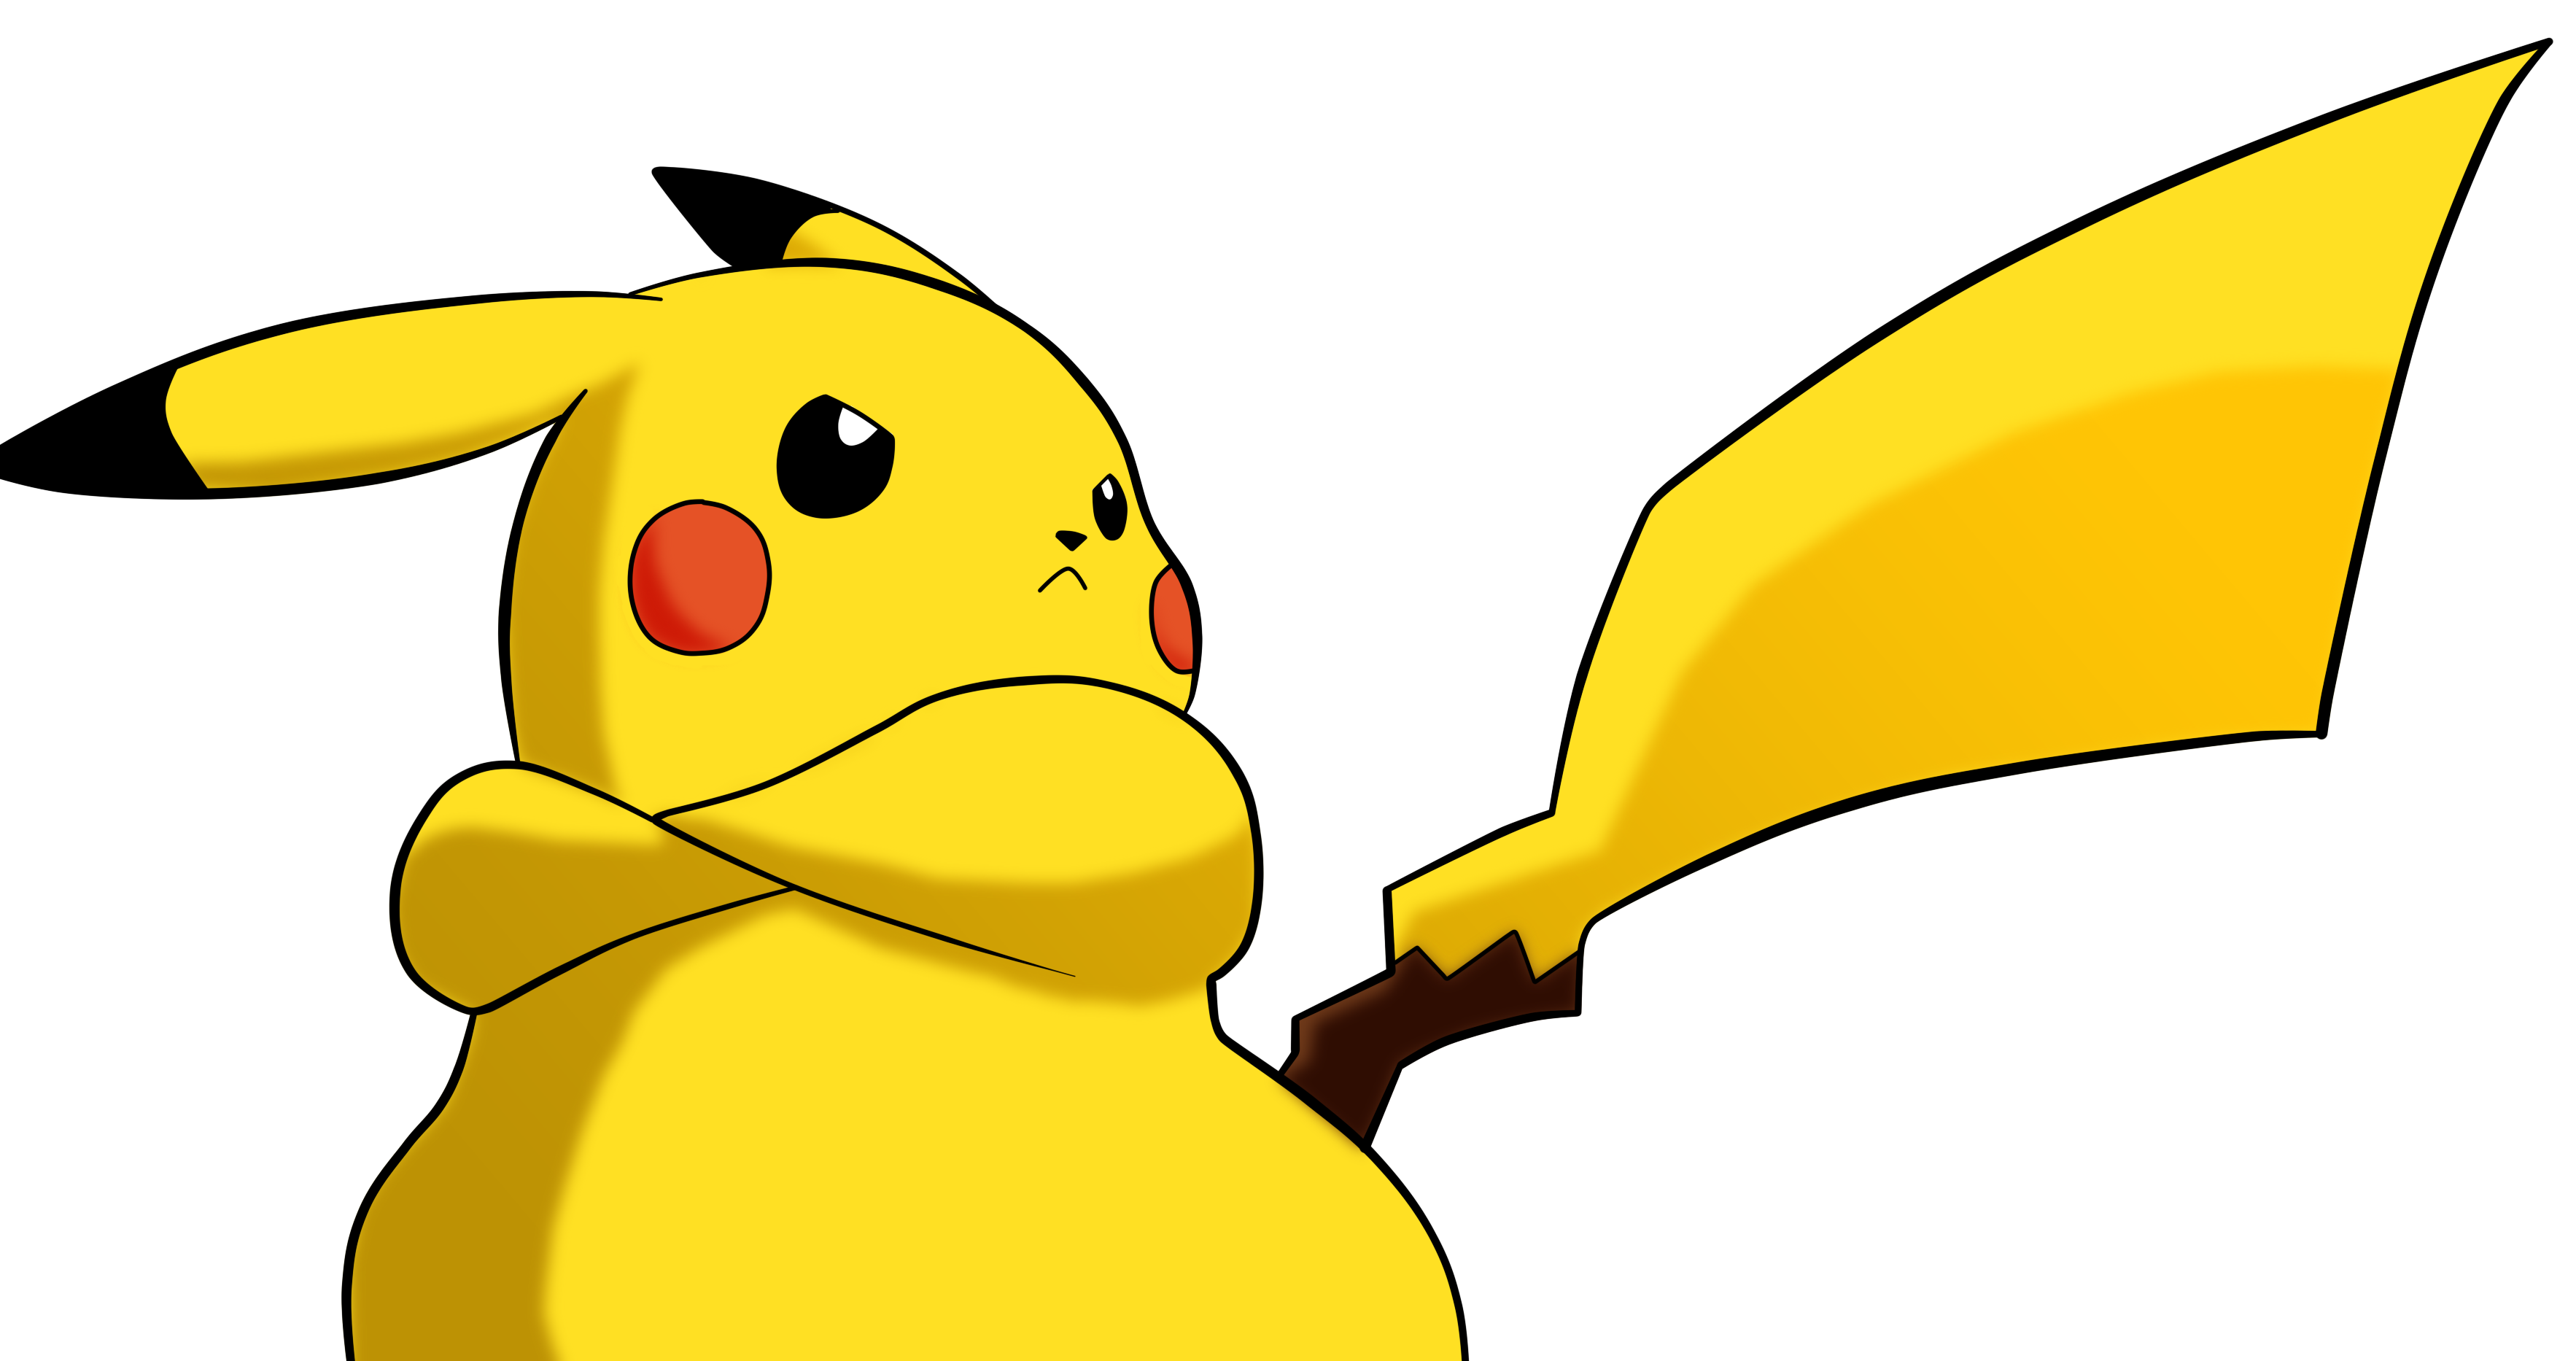 Top 5 Favorite Video Game Characters - Page 2 Pikachu_epic_pose_by_dhencod-d55ji0n